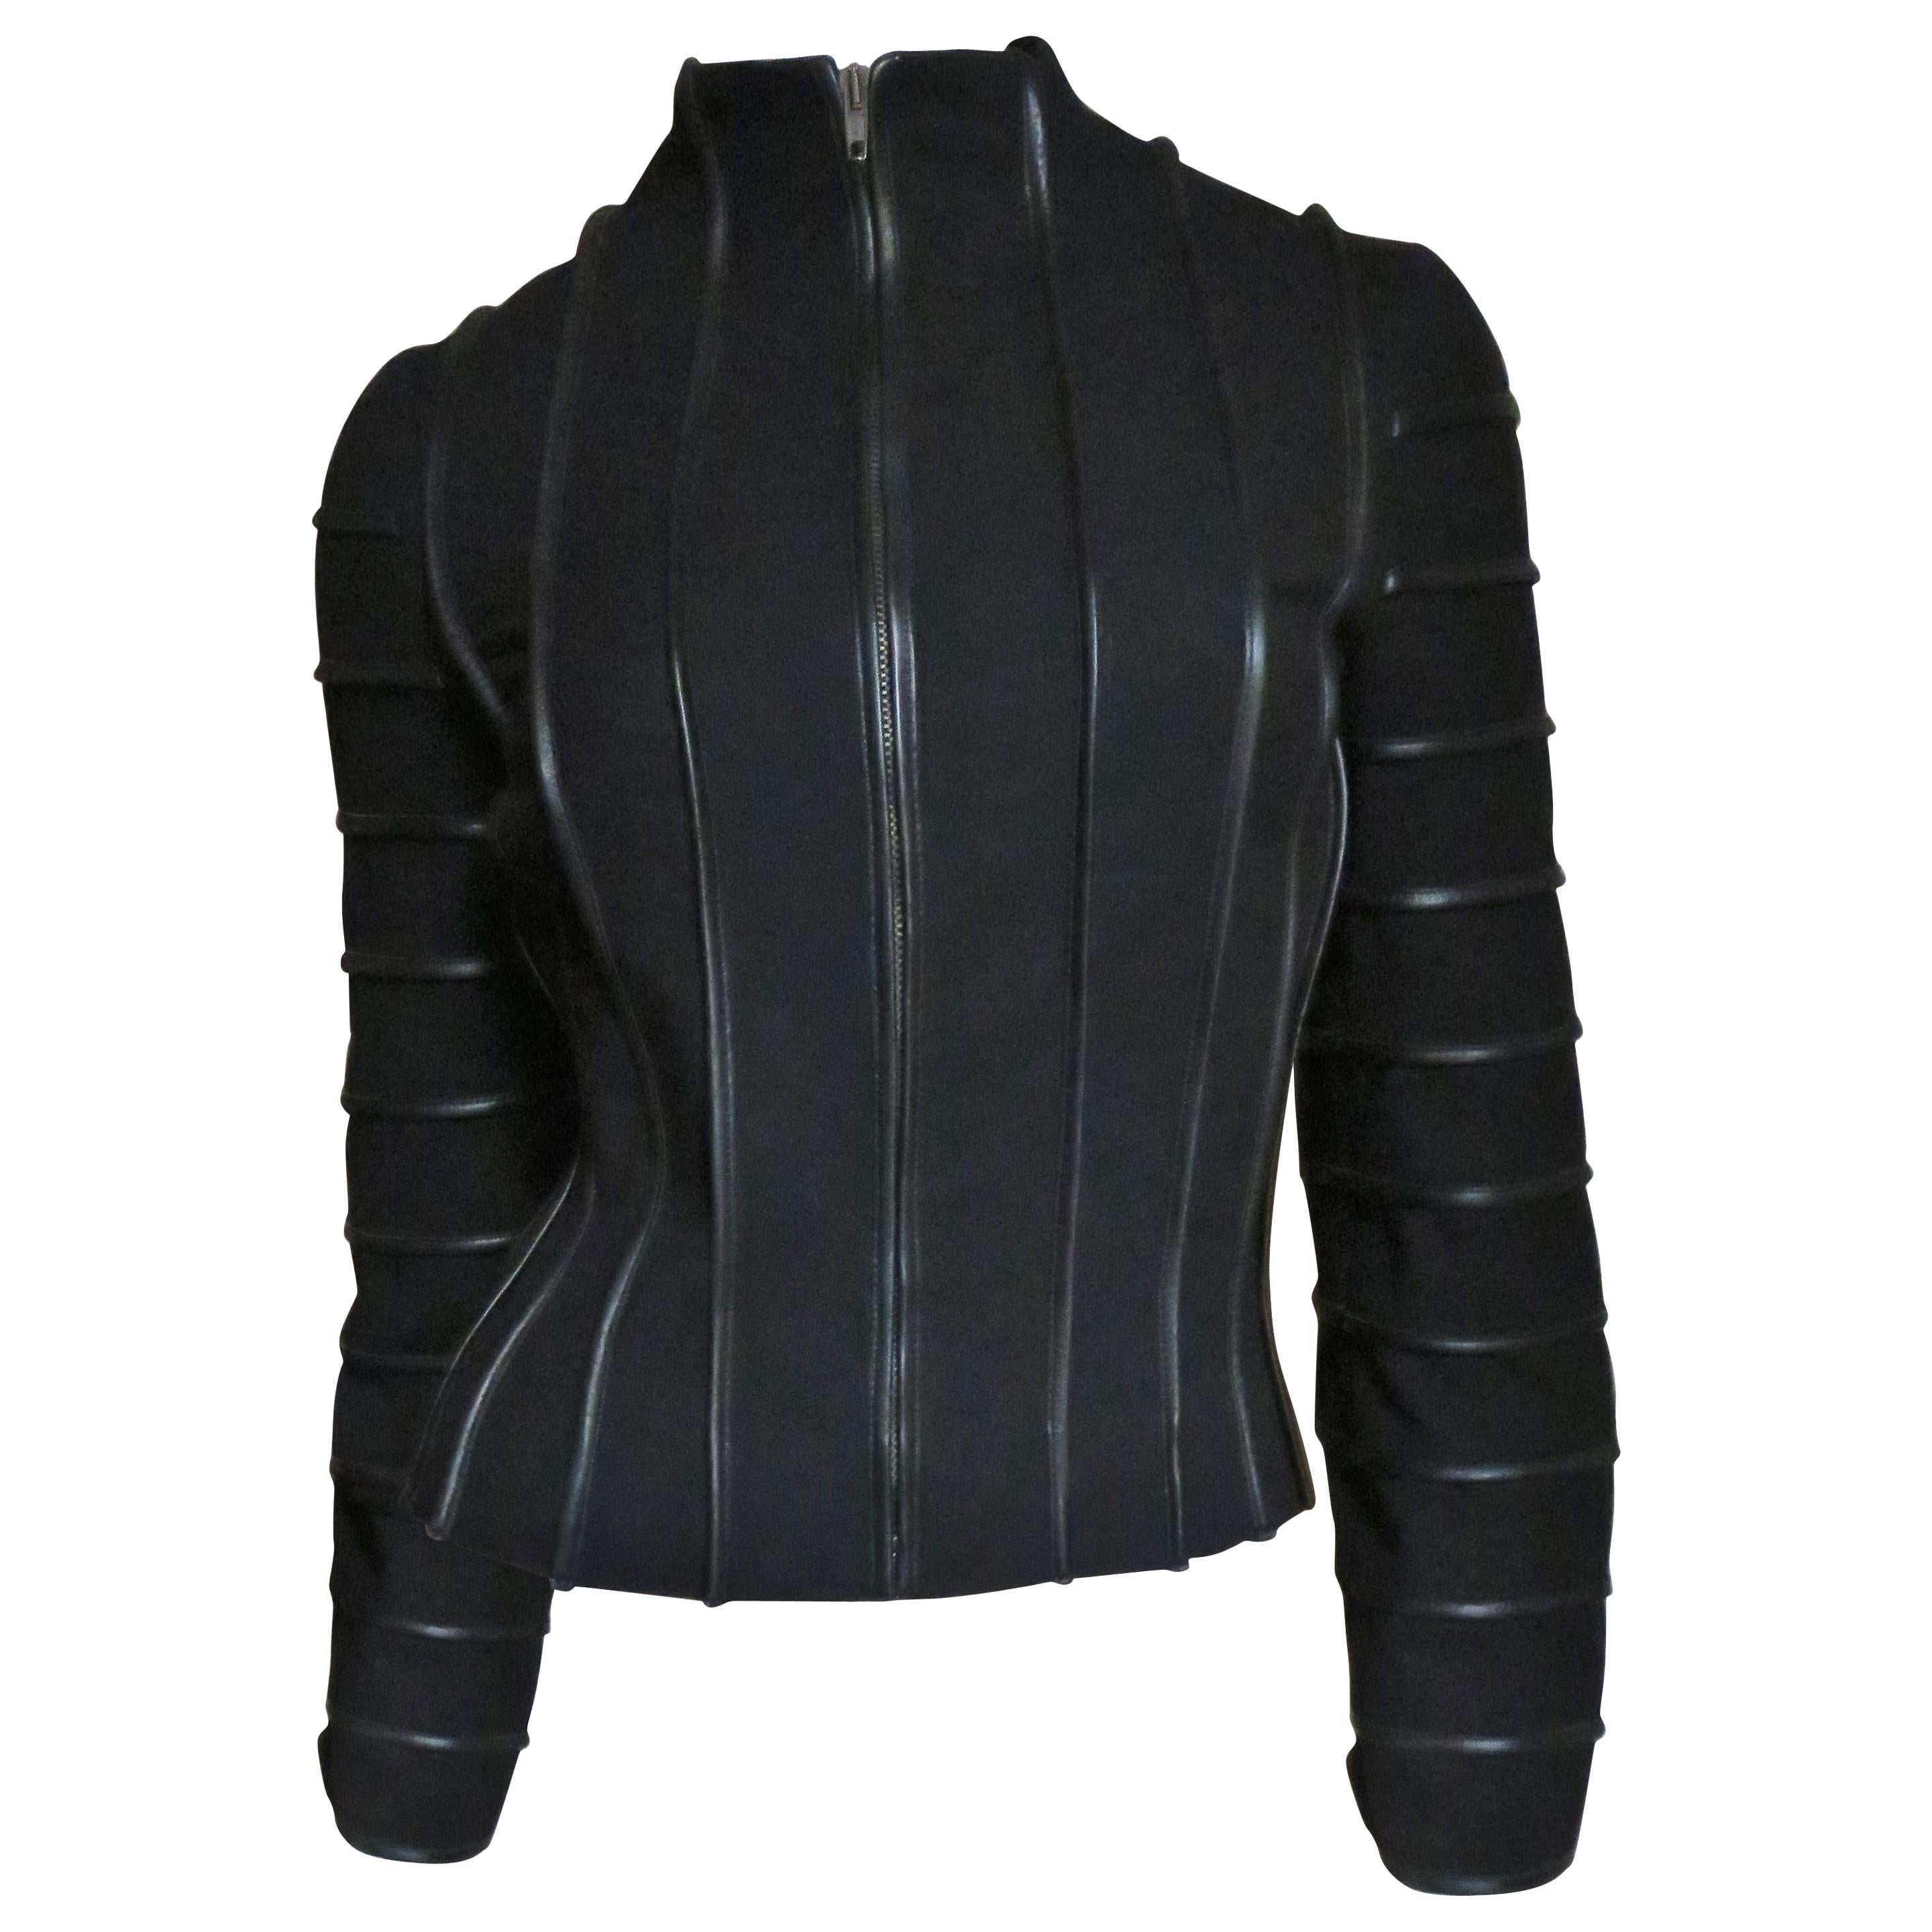 Moschino Wool Jacket with Leather Piping